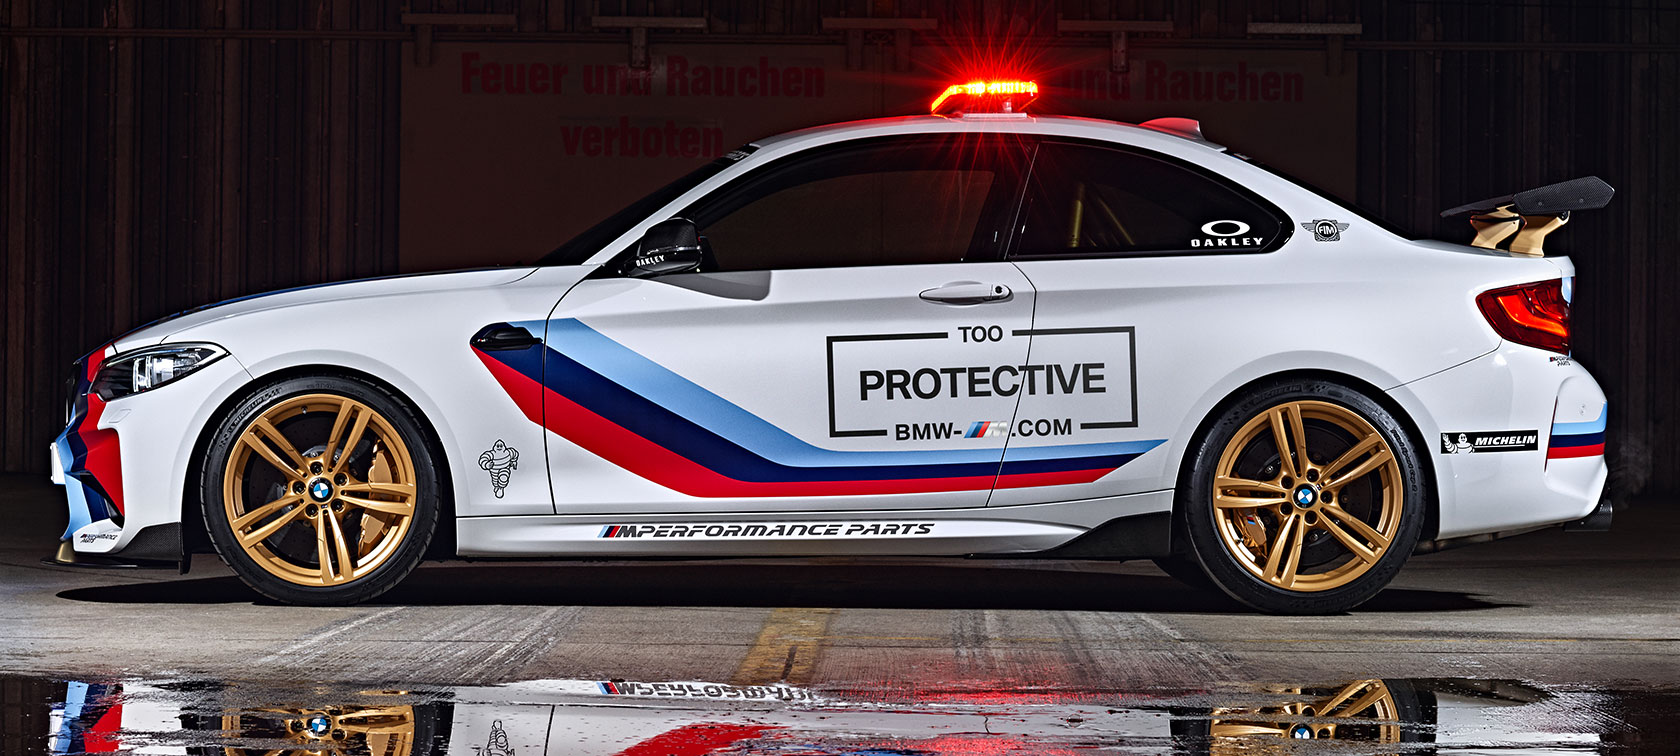 The BMW M2 MotoGP Safety Car